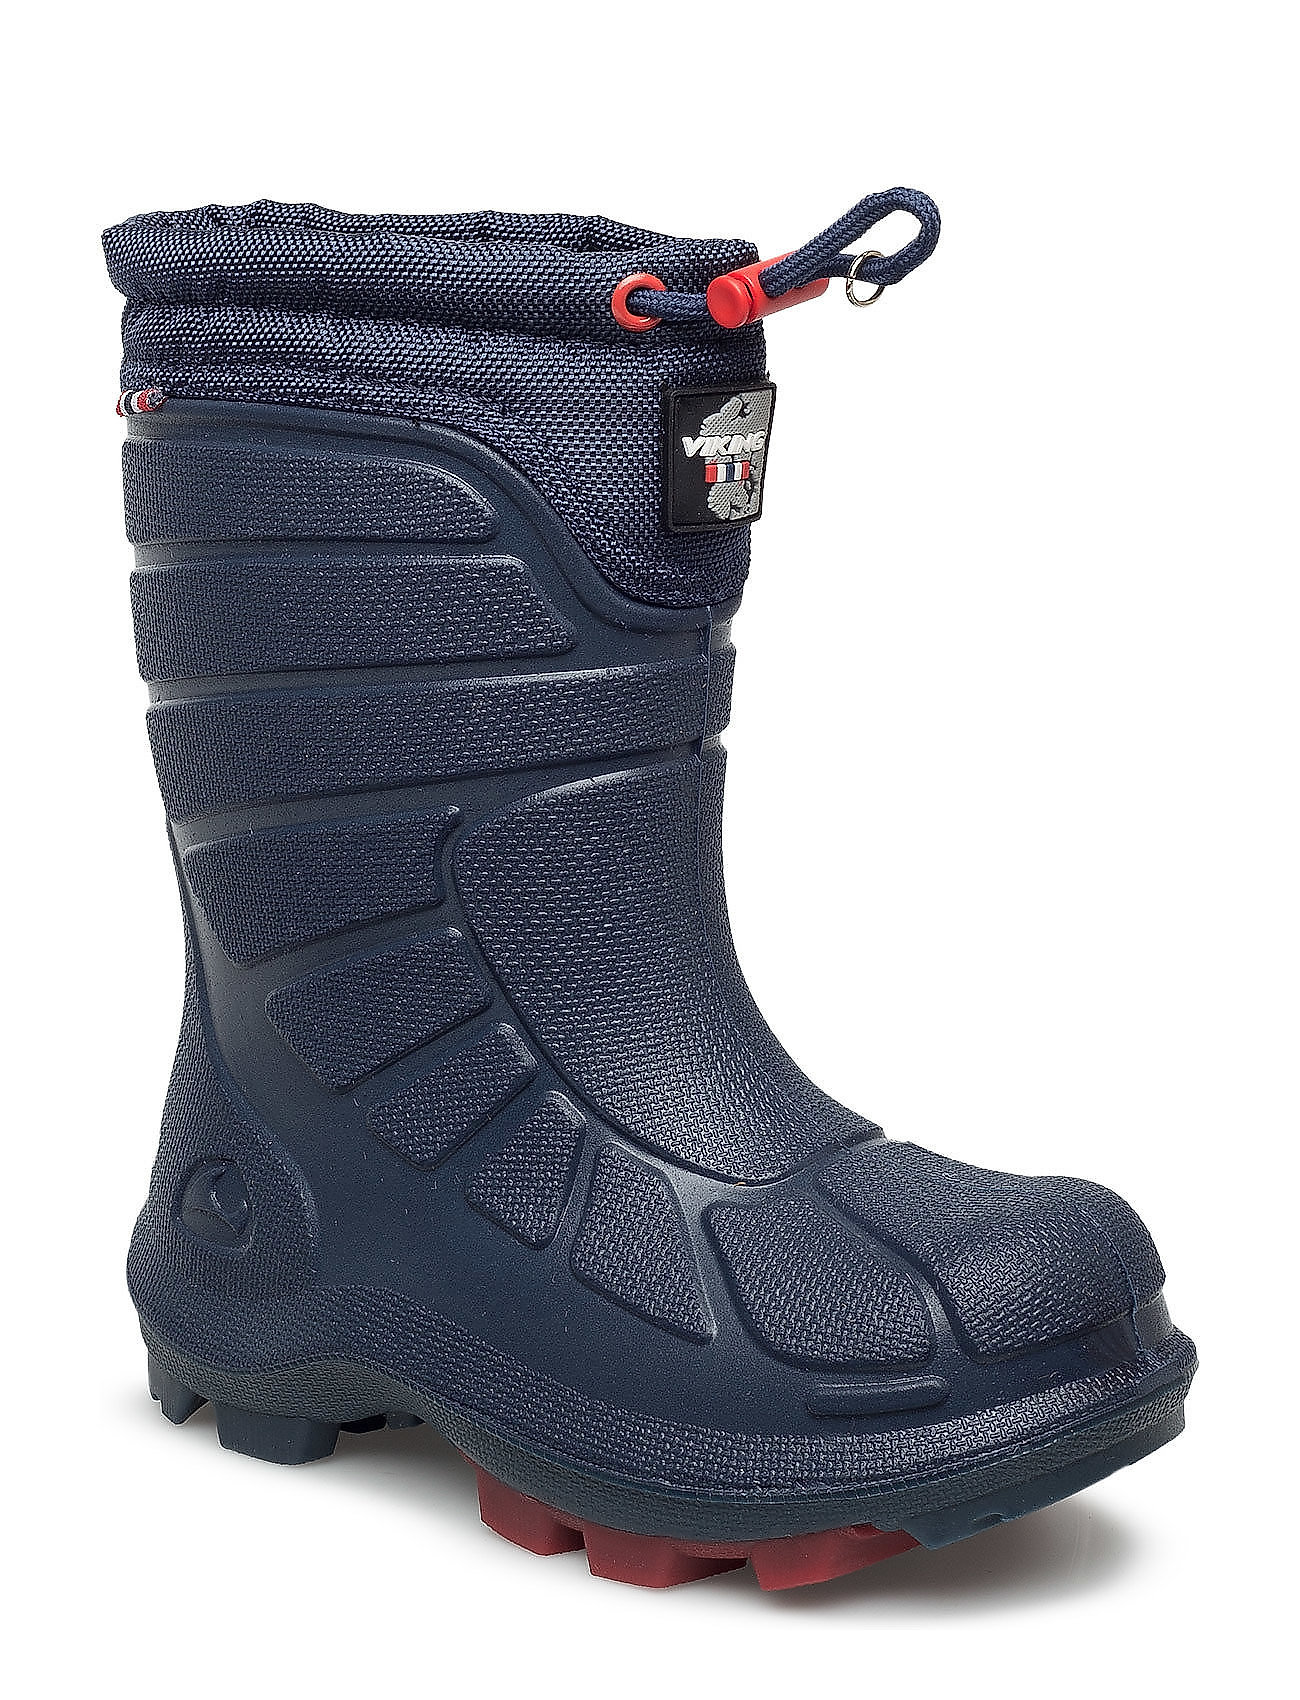 Viking EXTREME - NAVY/RED